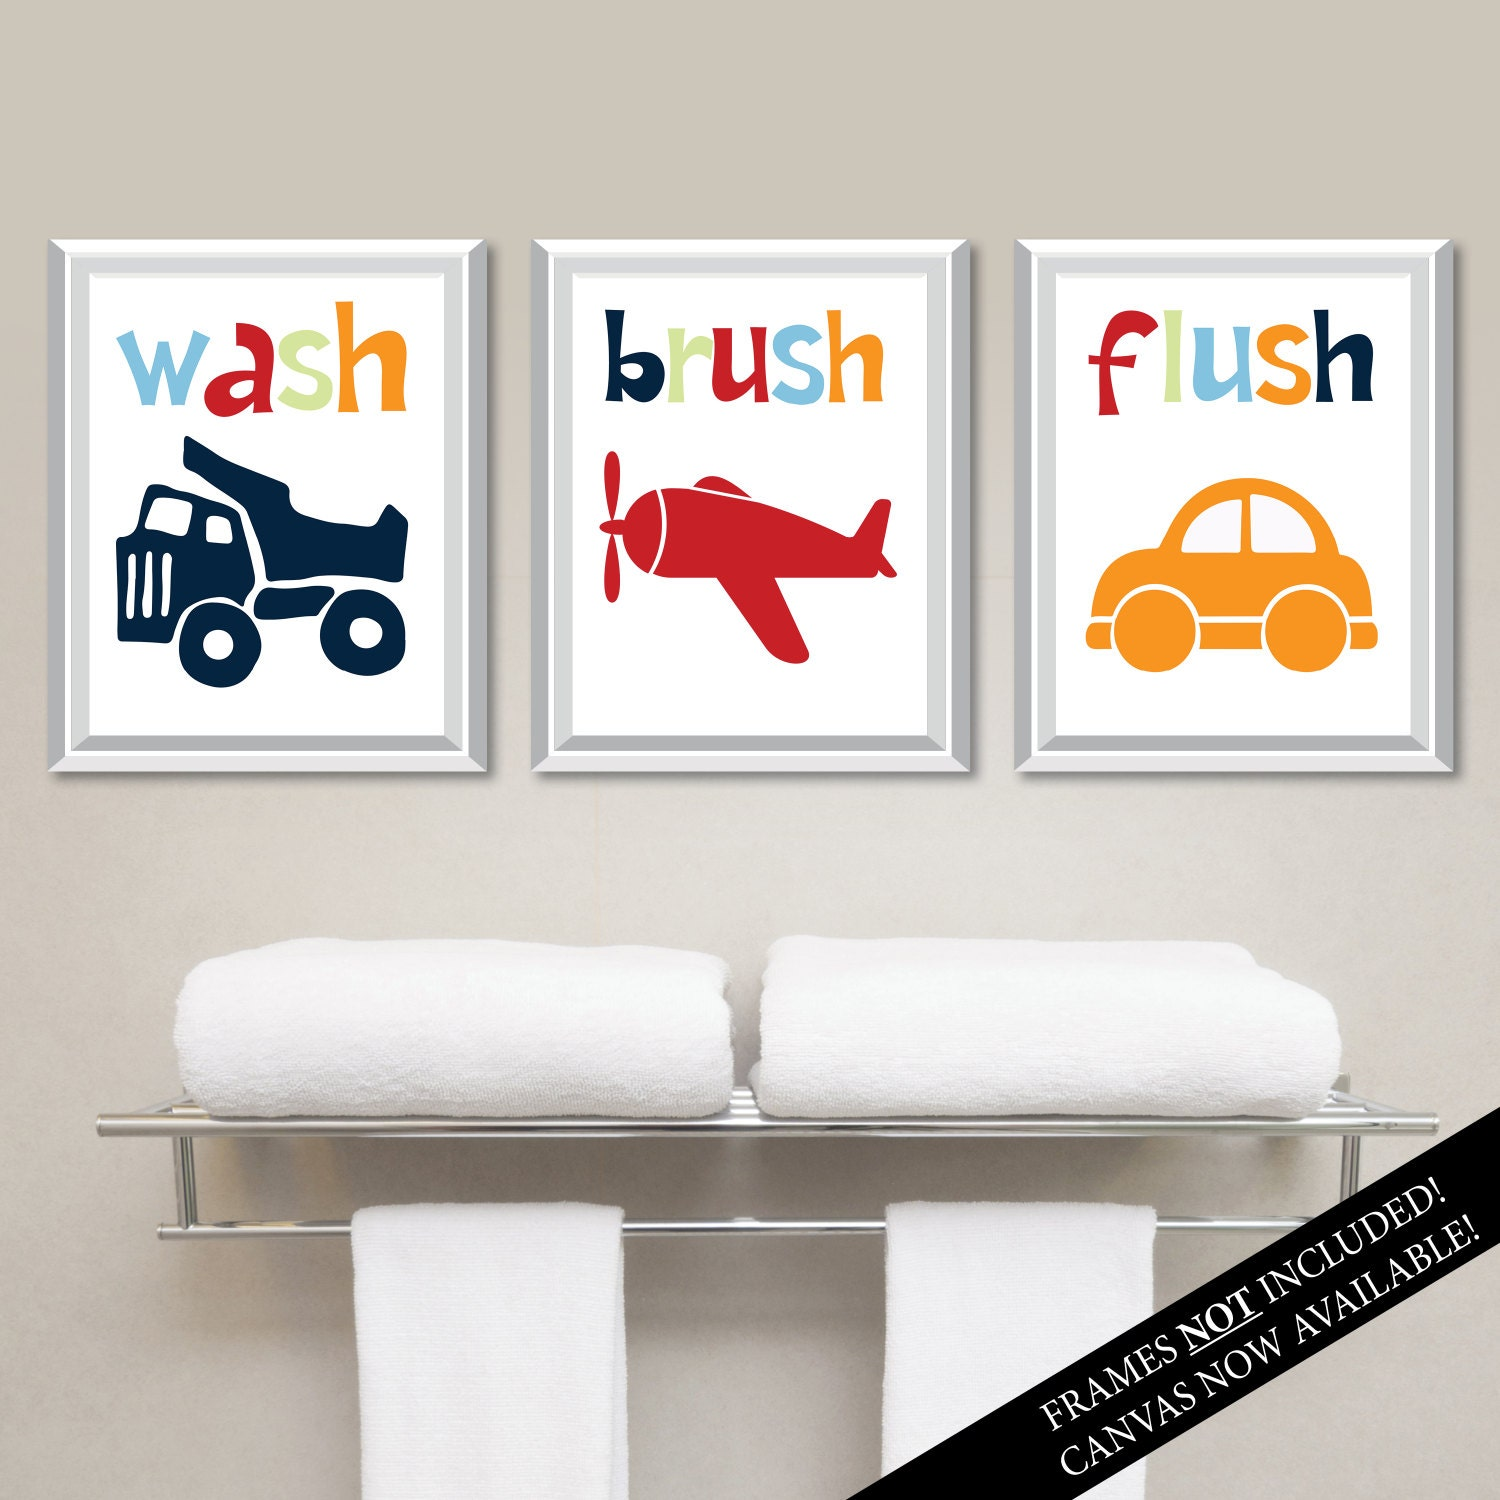 Bathroom wall art for kids - Transportation Bathroom Art Prints Kids Bathroom Art Kids Bathroom Decor Kids Bathroom Wall Art Home Decor Wall Bathroom Art Ns 809